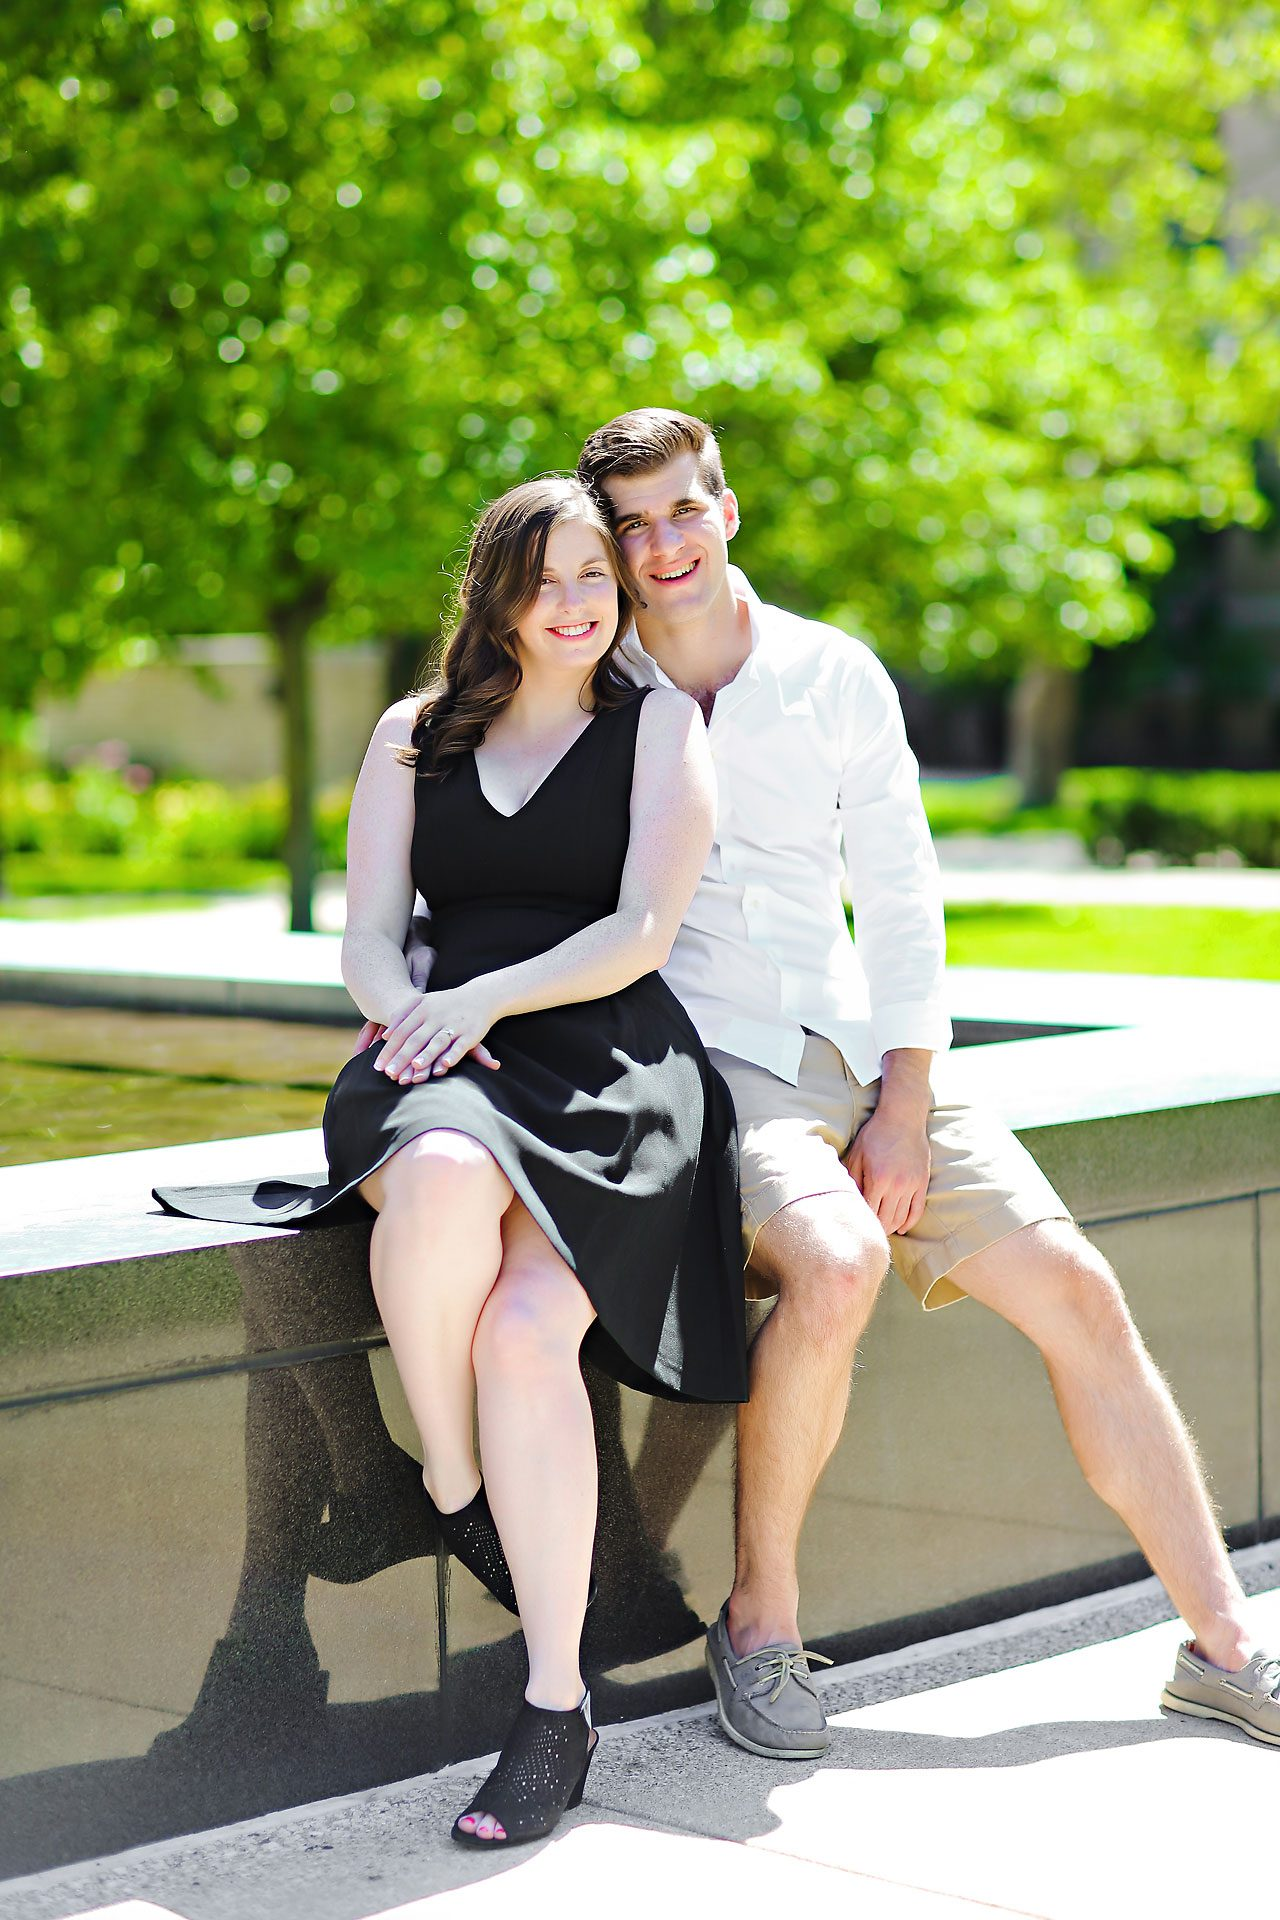 Jessie Chris Notre Dame Engagement Session 031